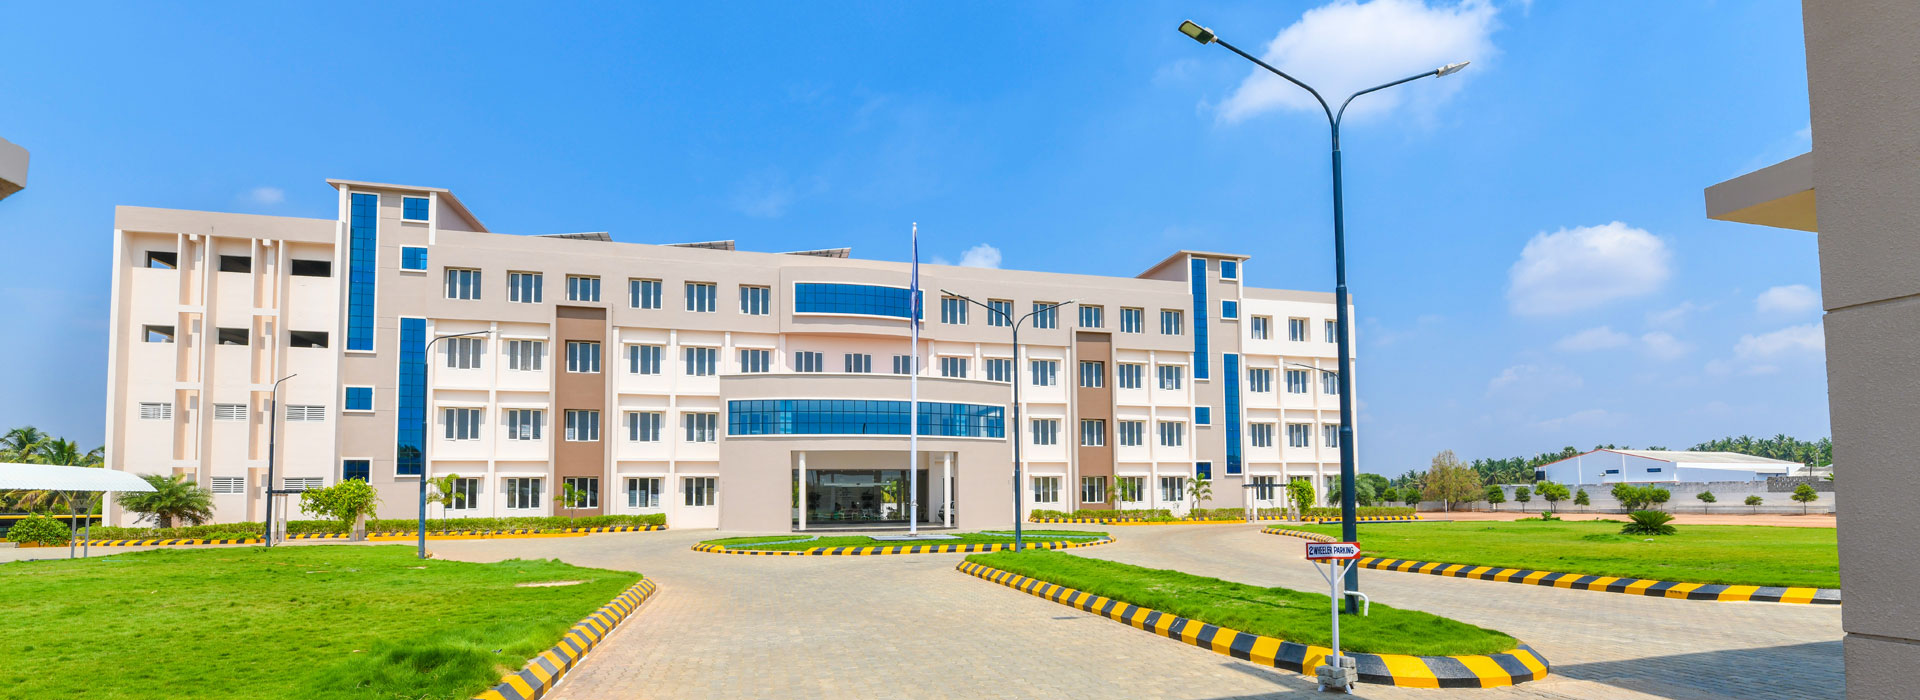 A.V.P. College of Arts and Science, Tirupur